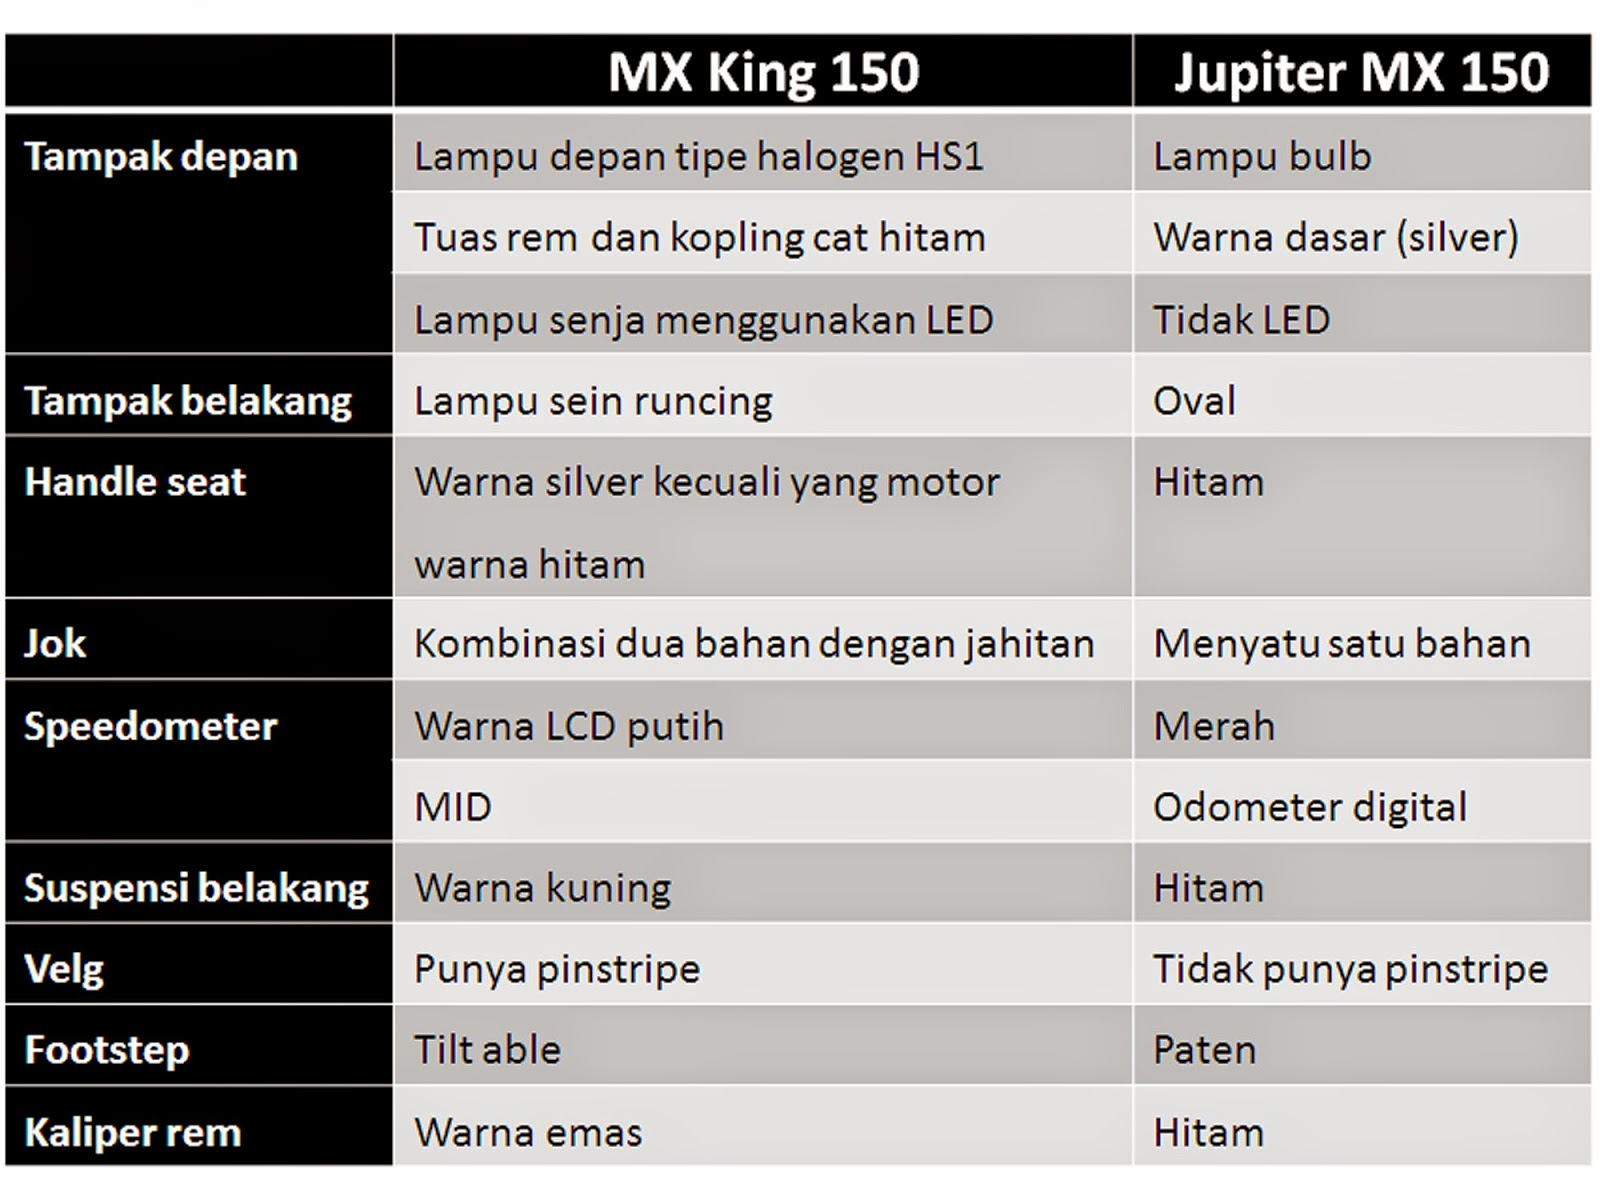 Yamaha MX King 150 - izor note's